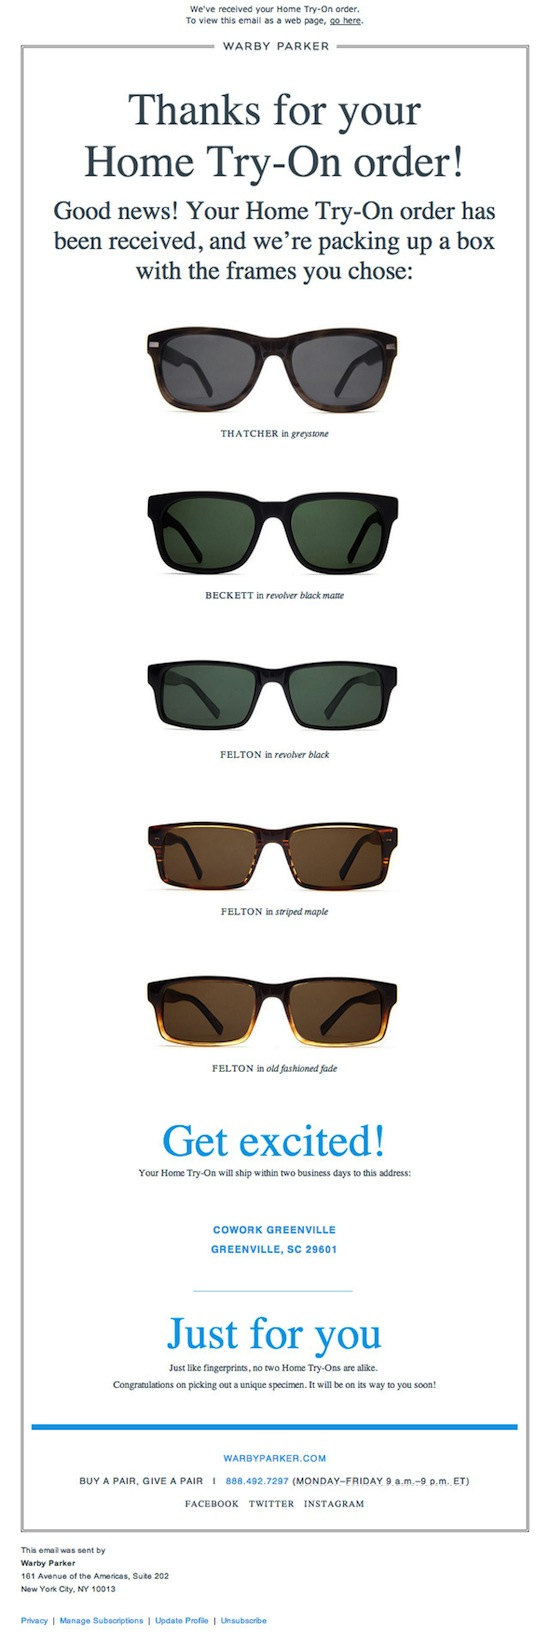 Thank-you-for-your-Order-Email-Design-from-WarbyParker